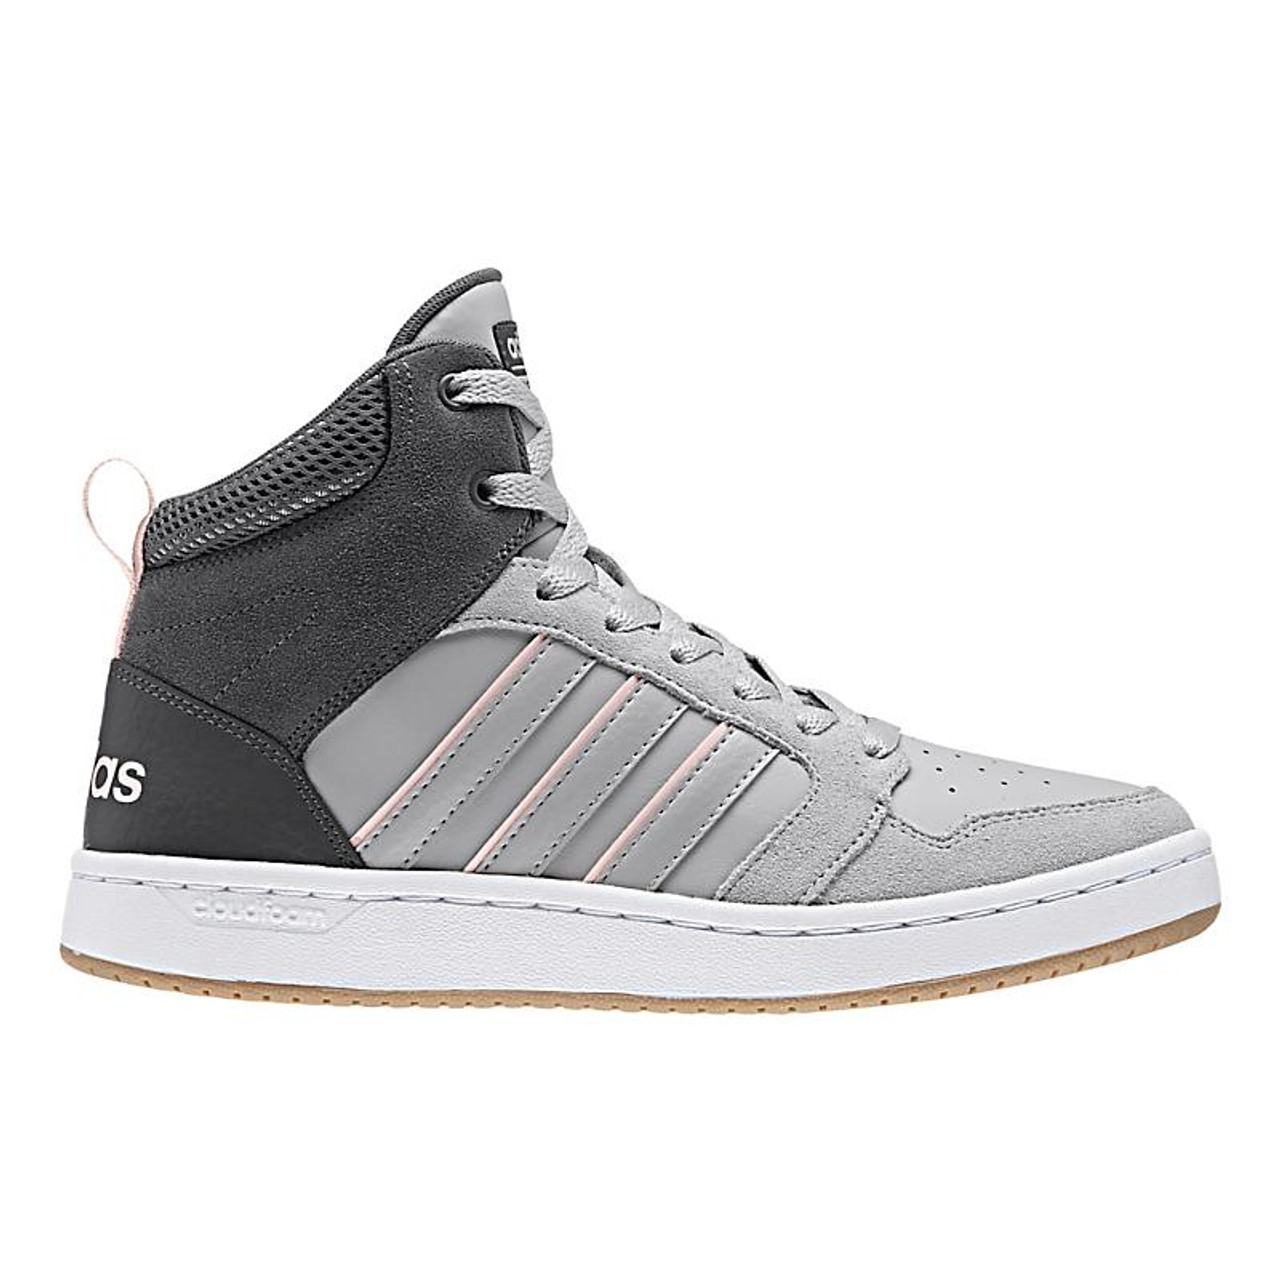 34be92e3c493 Women s adidas CloudFoam Super Hoops Mid Casual Shoe